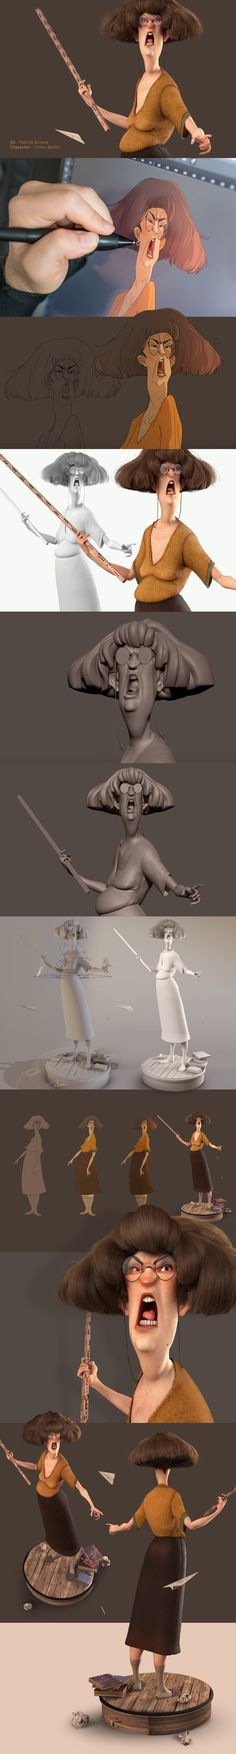 Back to school - 3D Character design on Behance (it's uncanny, that lady looks a lot like my old art teacher)